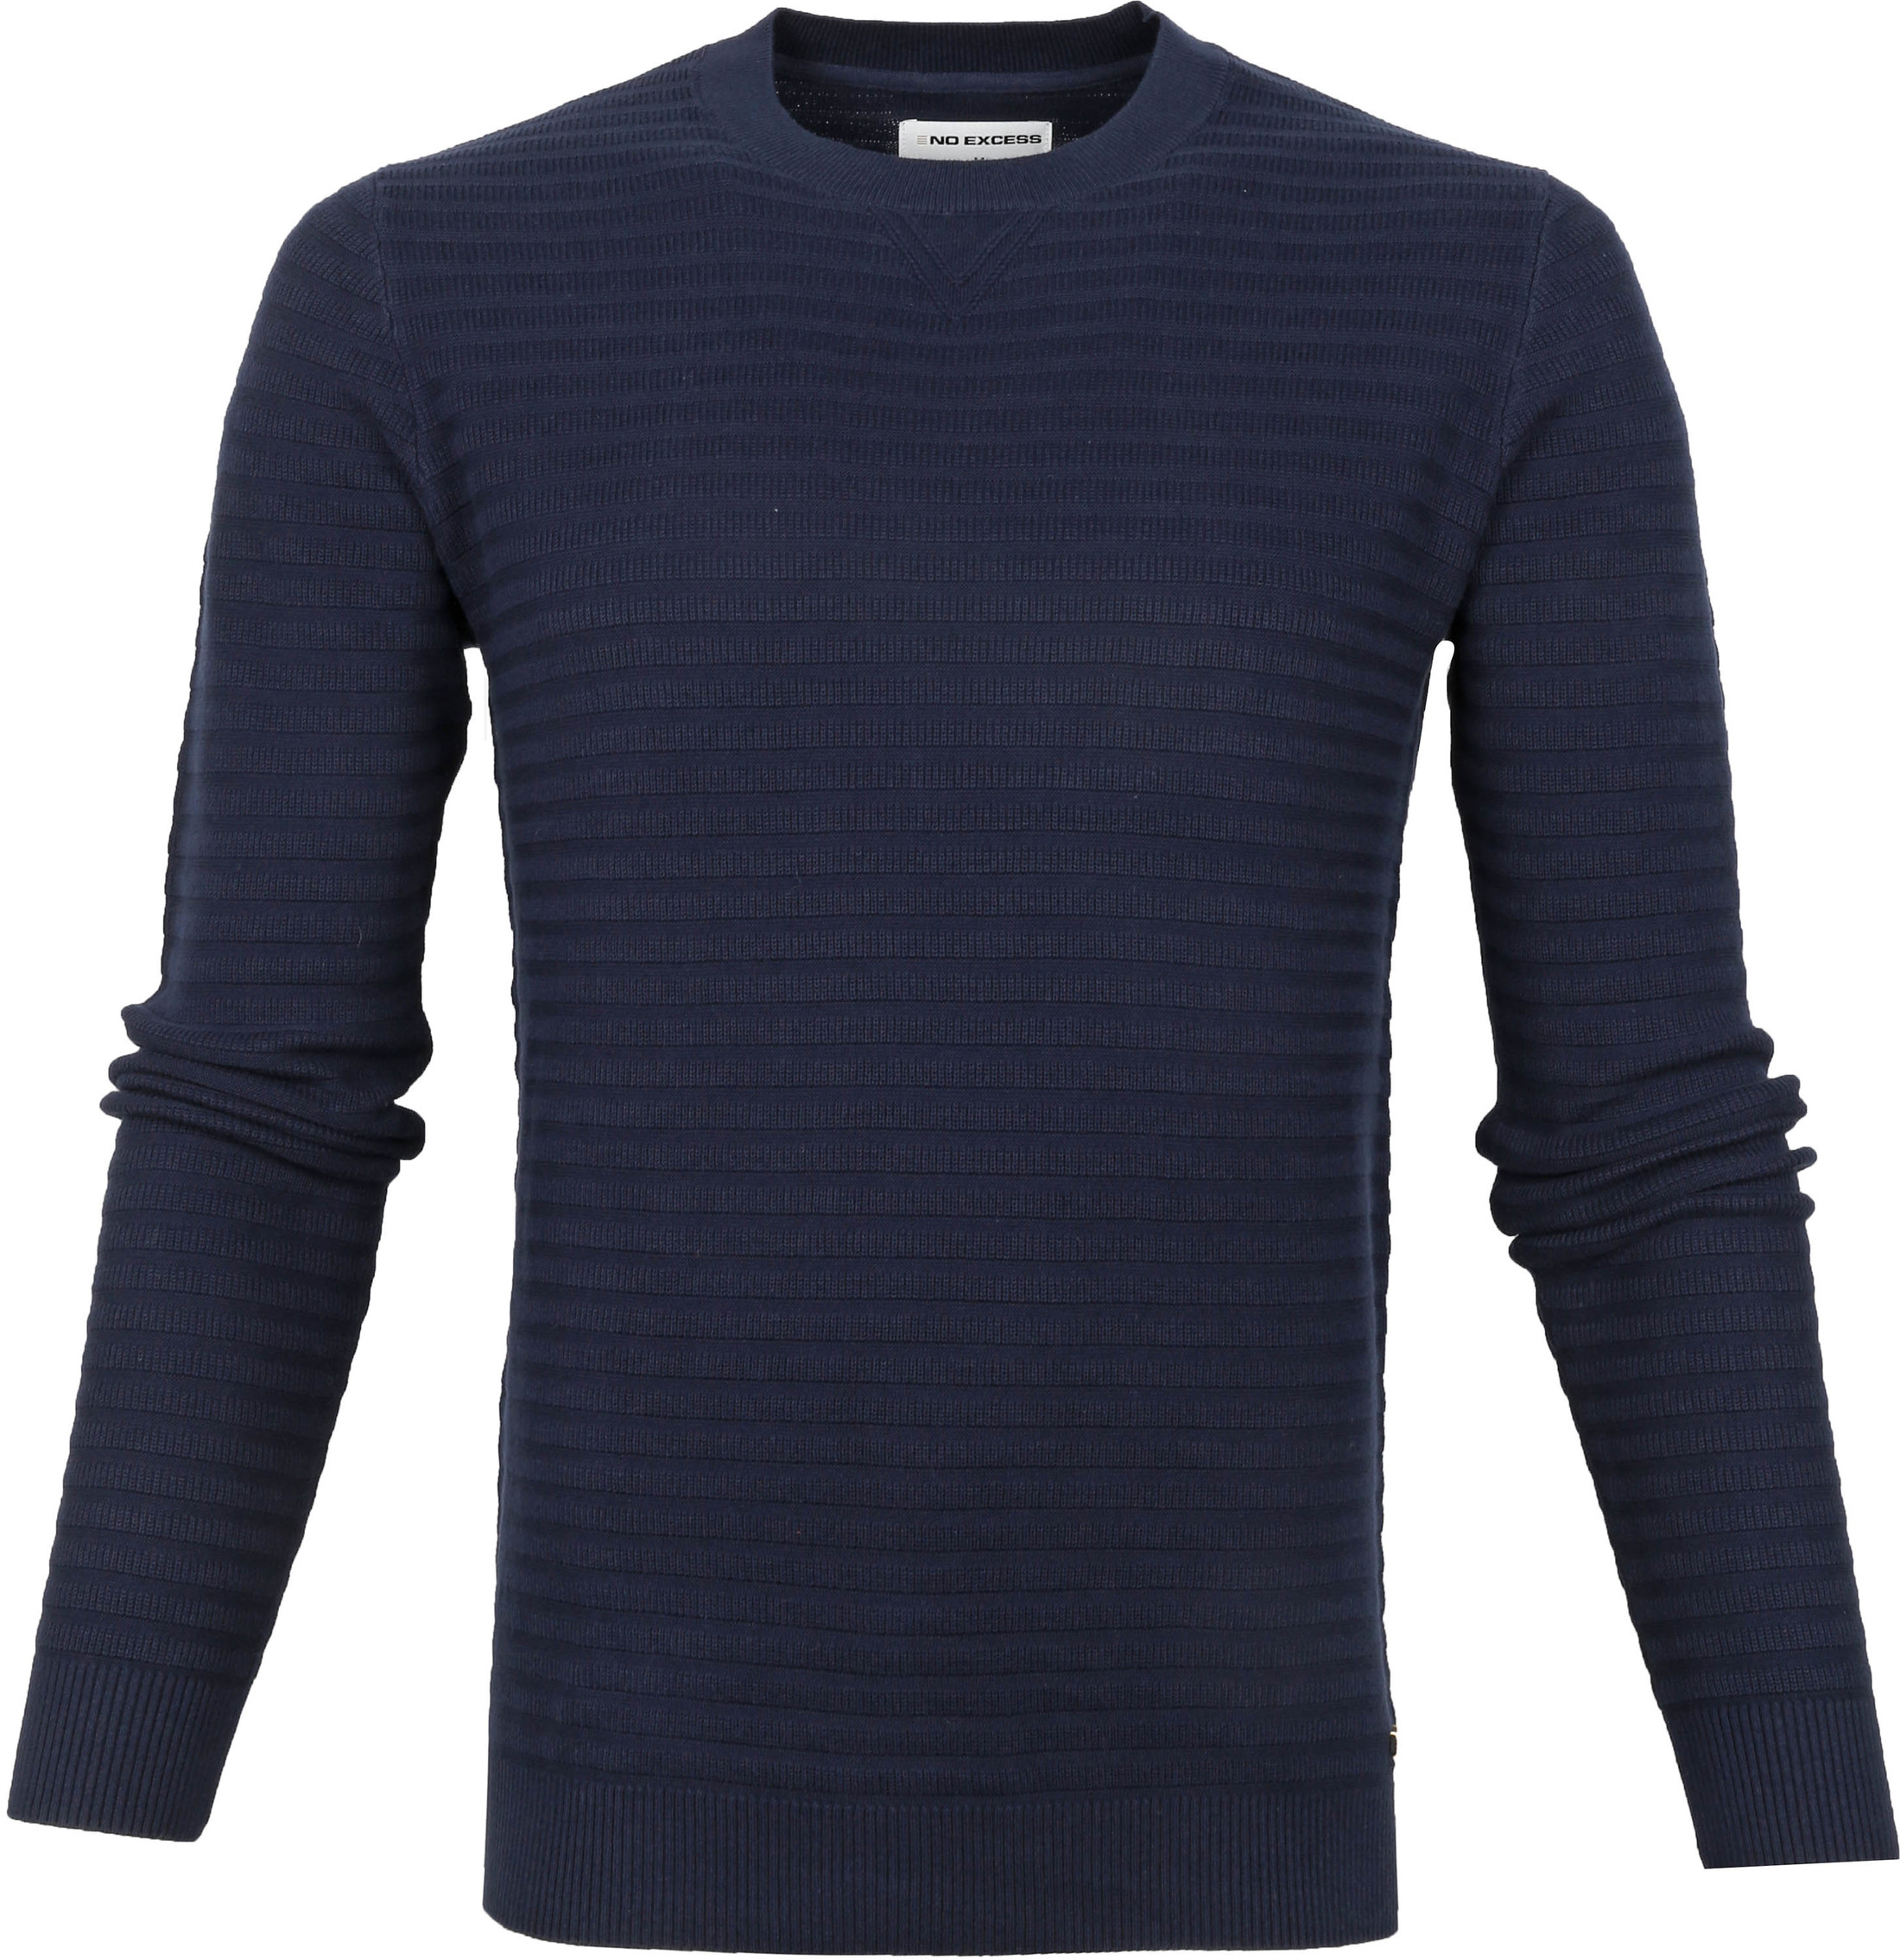 No-Excess Pullover Rib Donkerblauw